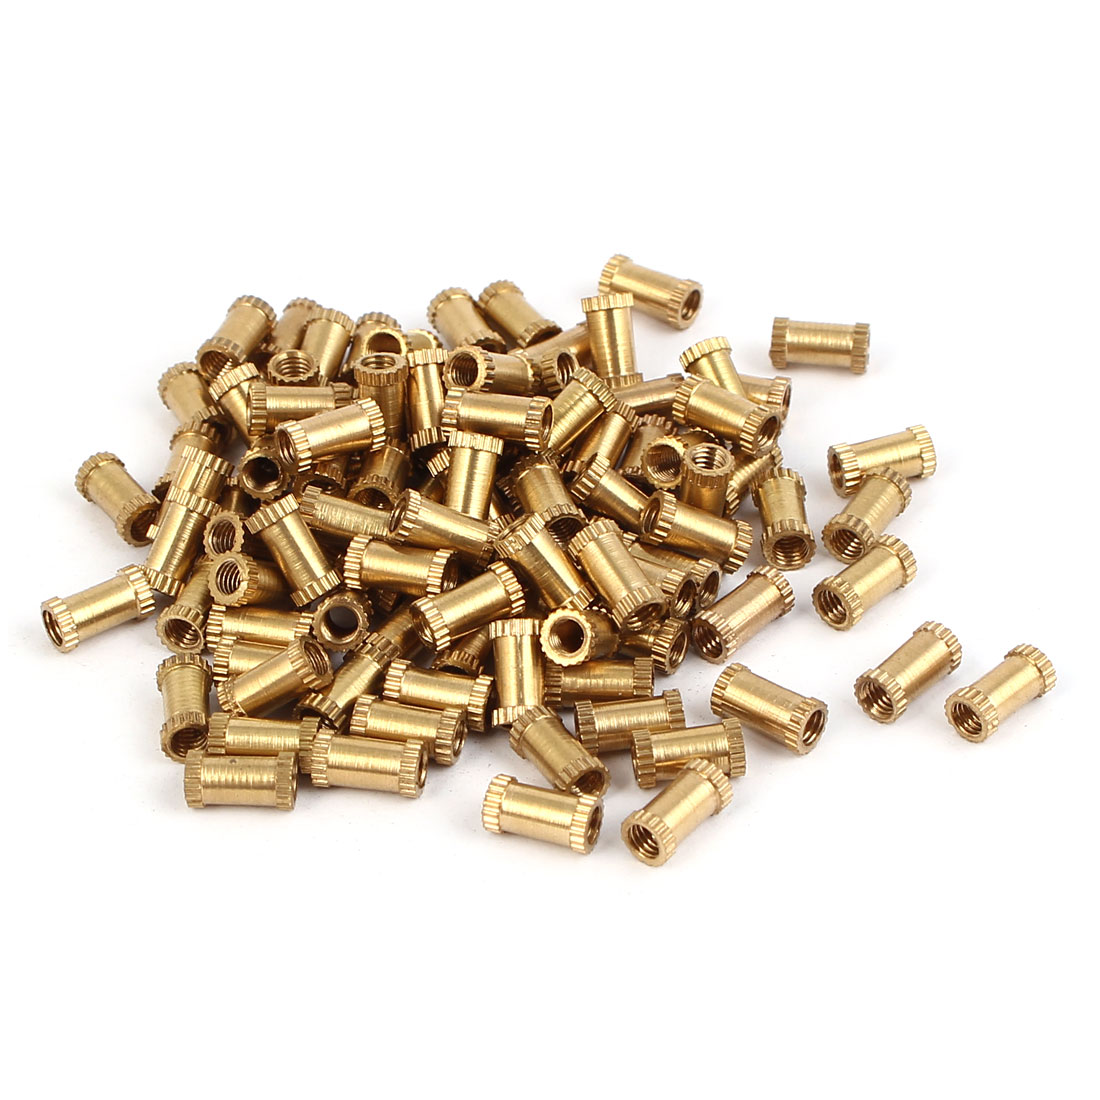 M3 x 8mm Brass Cylindrical Injection Molding Knurled Insert Embedded Nuts 100PCS